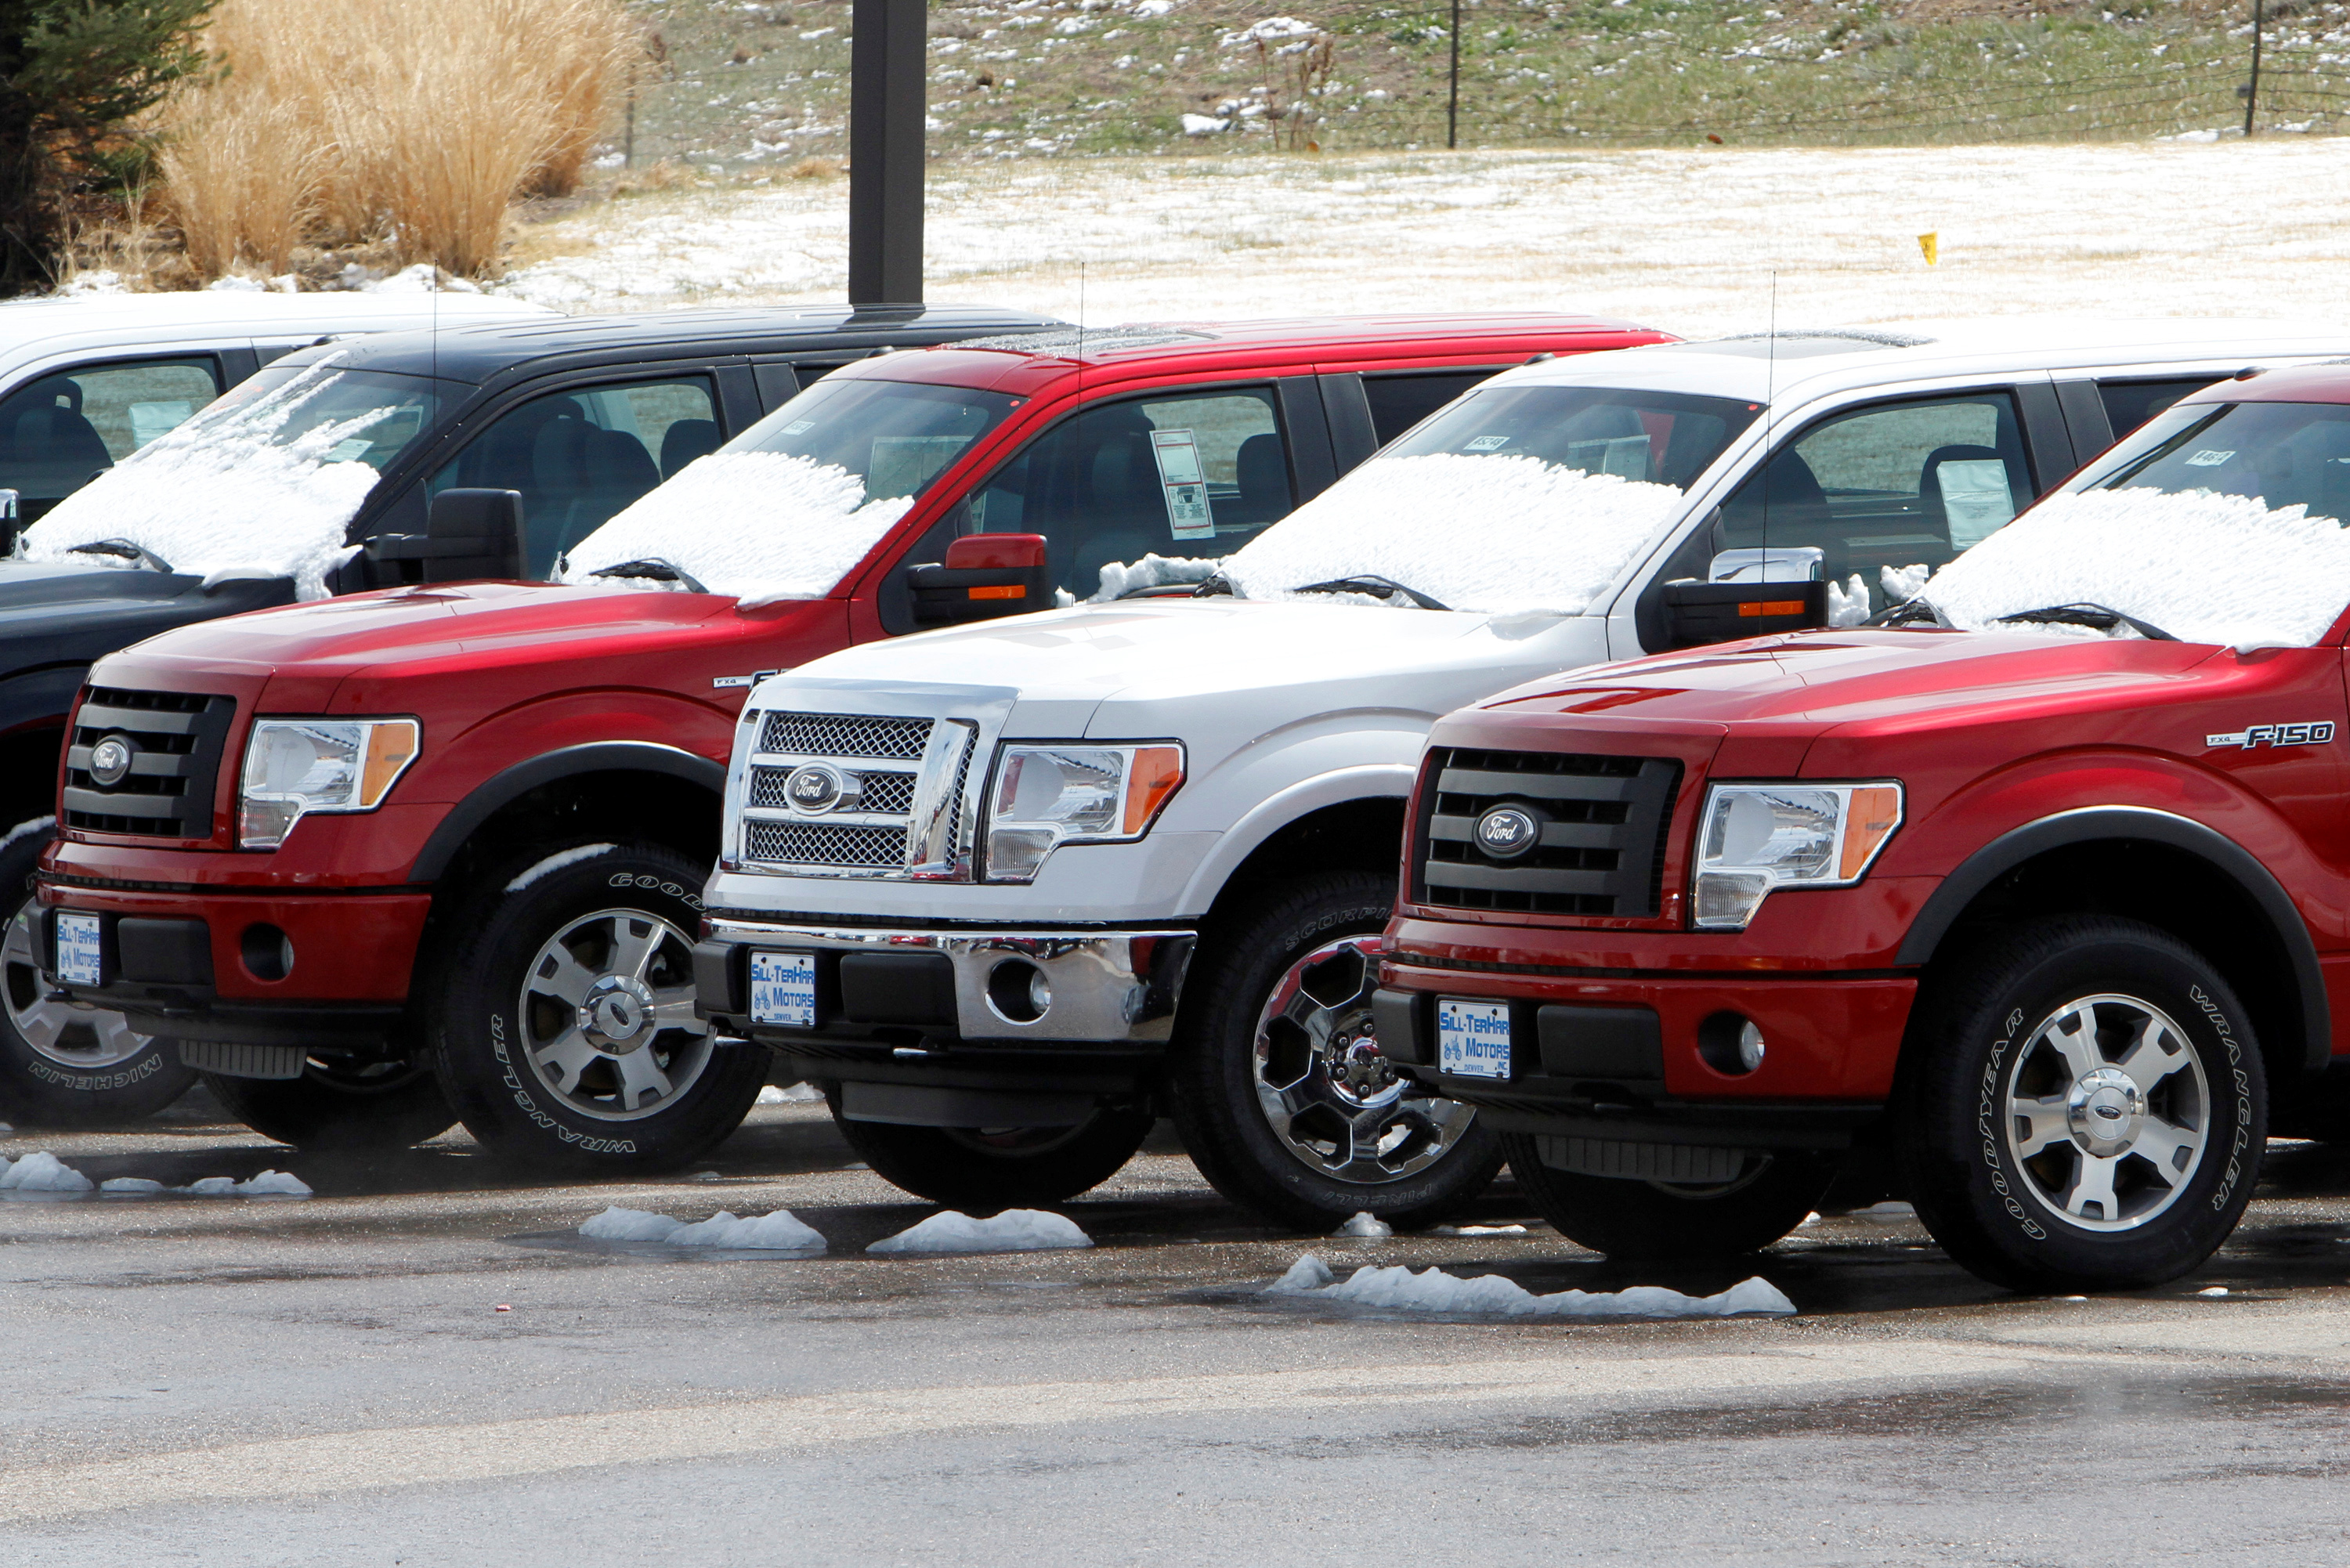 FILE PHOTO: A row of new Ford F-150 pickup trucks are parked for sale at a Ford dealer in the Denver suburb of Broomfield, Colorado, U.S., April 14, 2011. REUTERS/Rick Wilking/File Photo